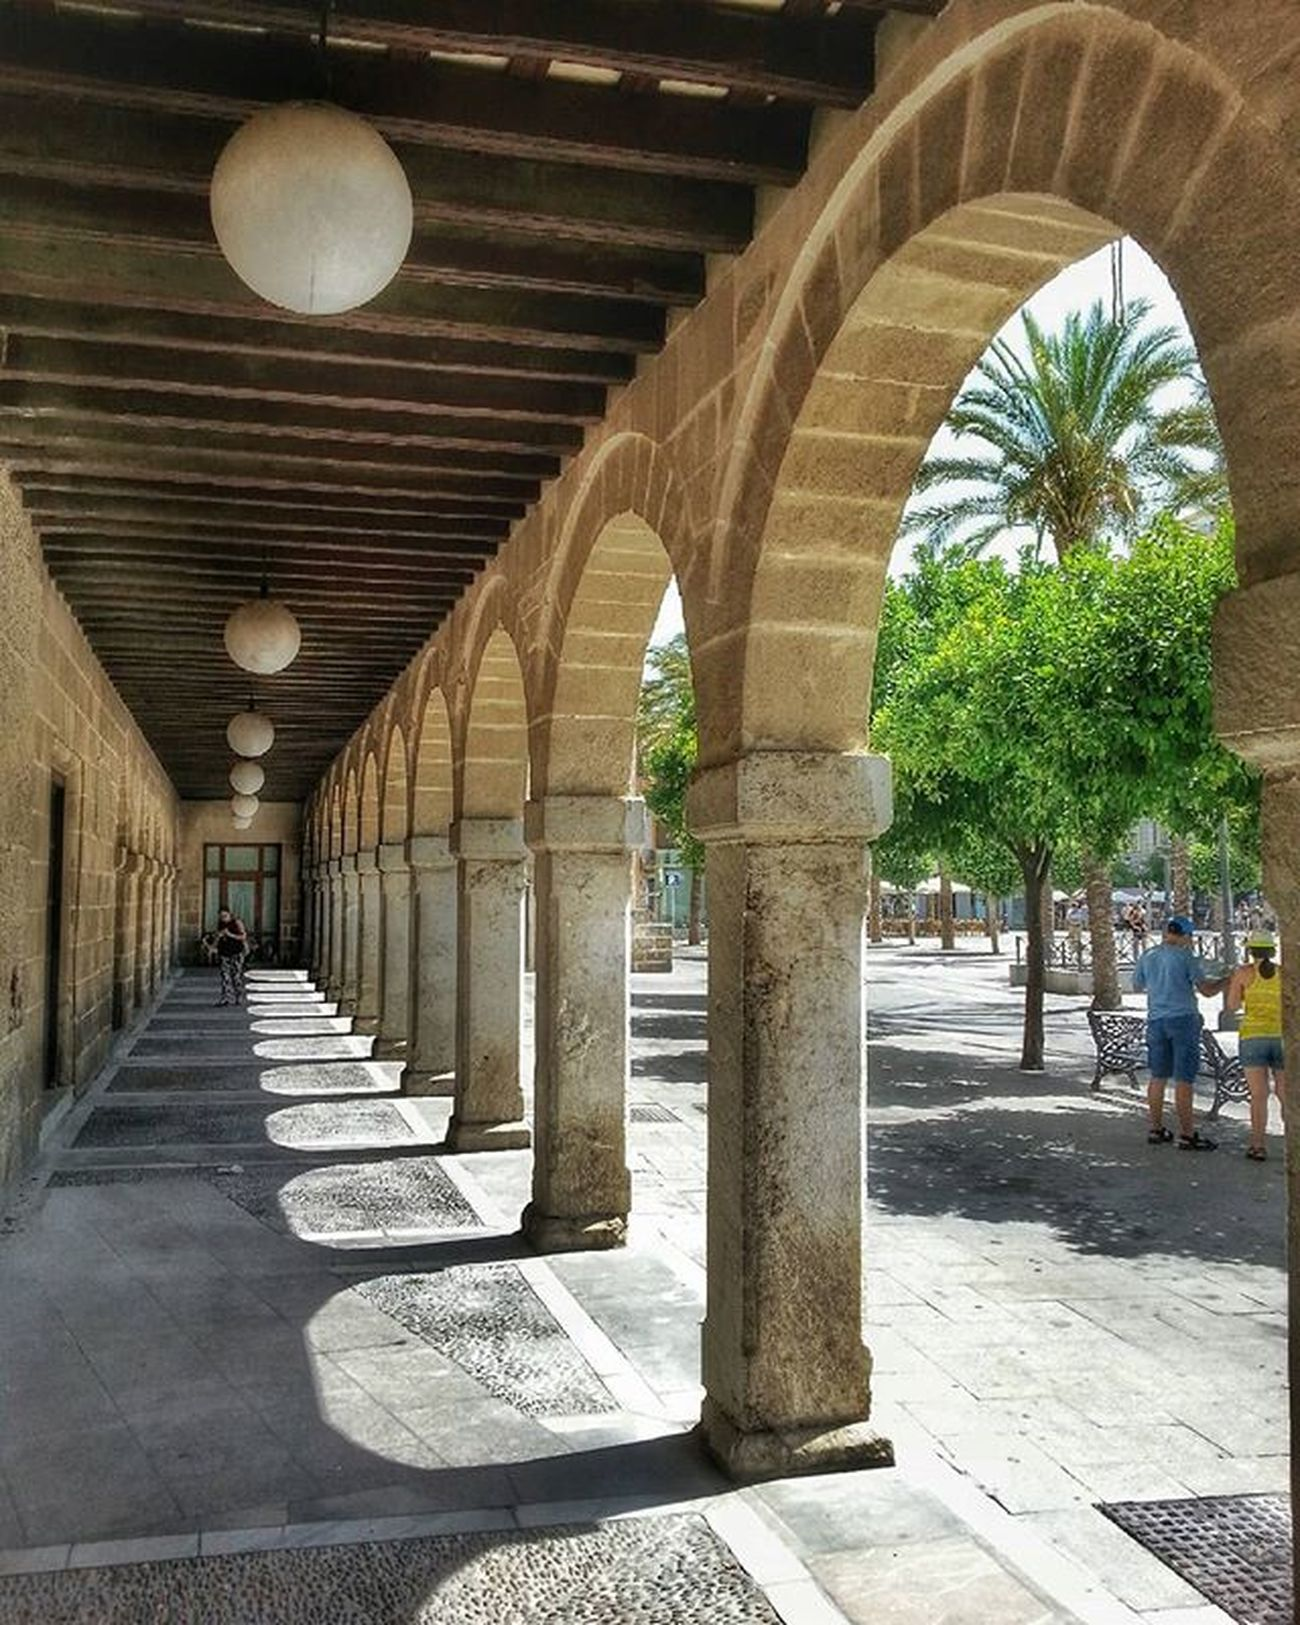 Plaza del Arenal de Jerez de La Frontera. ************************************************* ★★★★FOTO SELECCIONADA POR★★★★ 👉🏼@andalucia_monumental. Les doy las gracias por elegir esta foto para incluirla en su fantástica galería. Desde aquí recomiendo seguirlos y usar su etiqueta. ************************************************* Jerezdelafrontera Todoclick Hdr_pics Hdr_lovers Great_captures_HDR Anonymous_hdr Collection_hdr Ok_spain Hdr_captures Love_hdr_colour Hdr_spain Roadwarrior_hdr Estaes_cadiz IG_HDR_DREAMS Descubriendoigers Travelmag_hdr Ok_streets Andaluciaviva Andalucia_monumental IG_andalucia Loves_cadiz Hdr_proffesional Ig_great_pics Asiesandalucia Your_worldcaptures insta_world_free coolworld_hdr match_hdr turismojerez hdr_reflex